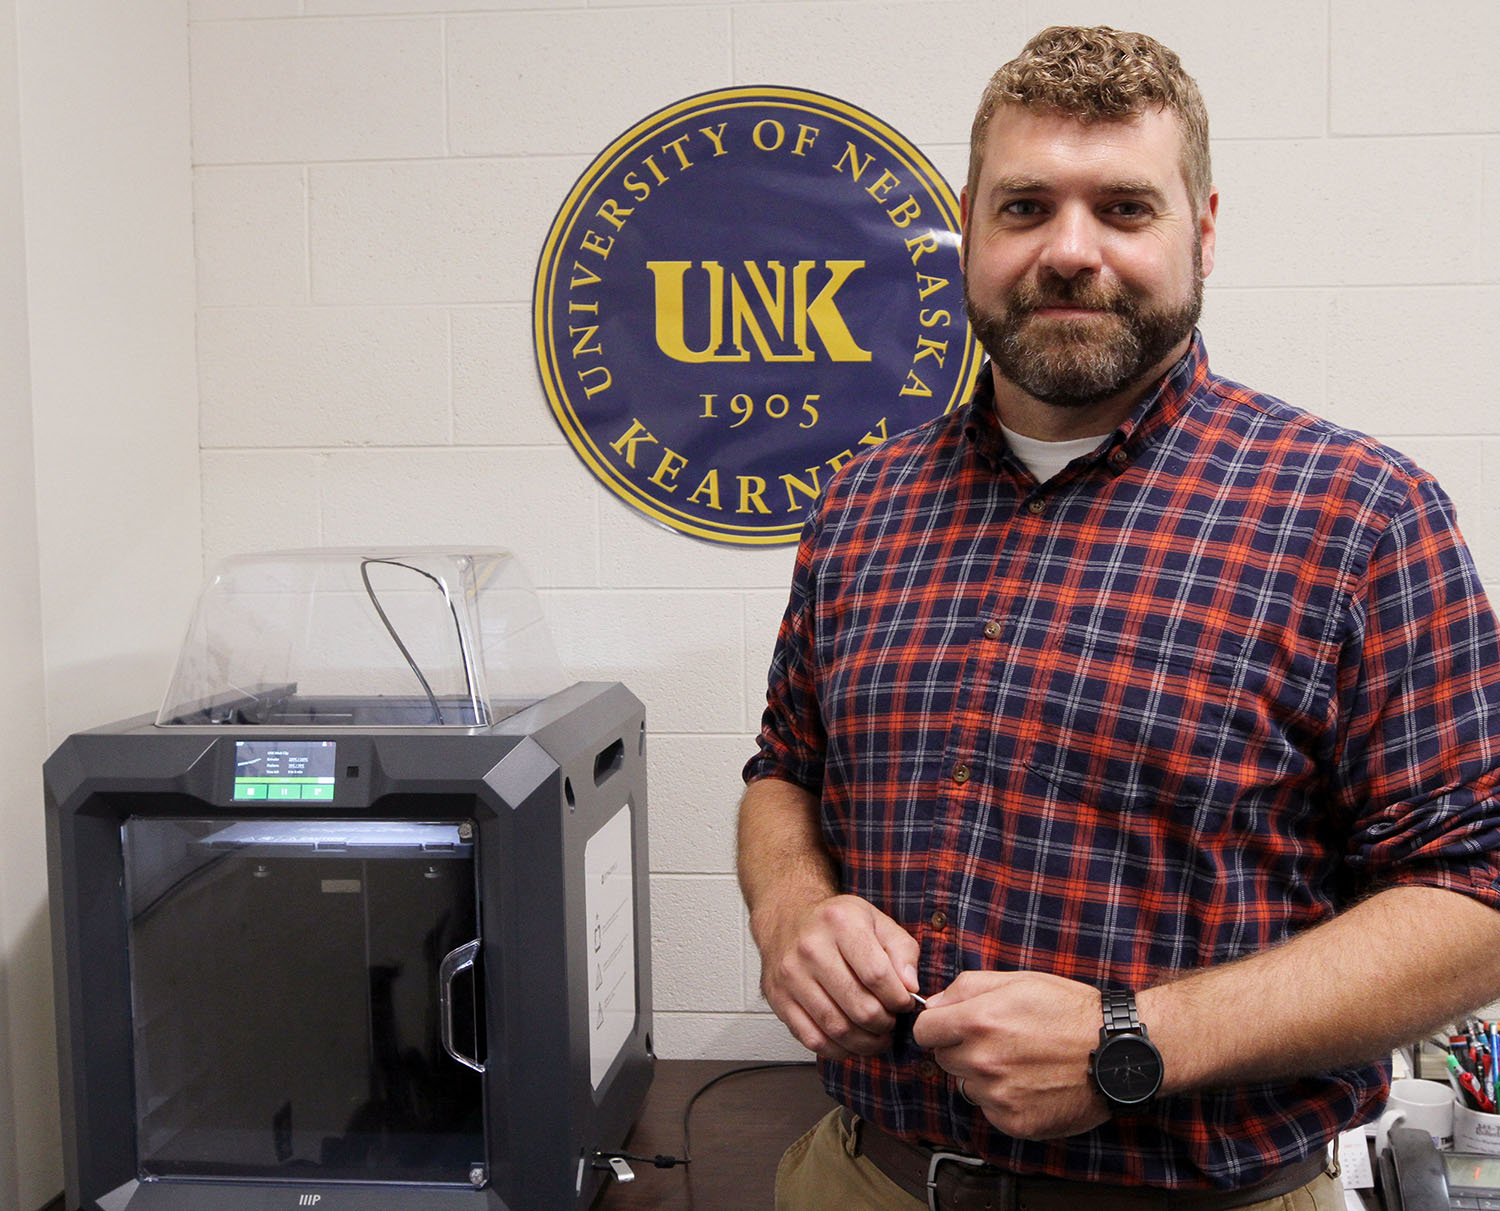 Michael Cremers, assistant director of UNK Facilities Management and Planning, uses a 3D printer to create a variety of parts instead of ordering them from an outside vendor. The 3D-printing program saves the department money and eliminates obstacles such as minimum order requirements and shipping delays. (Photos by Tyler Ellyson, UNK Communications)